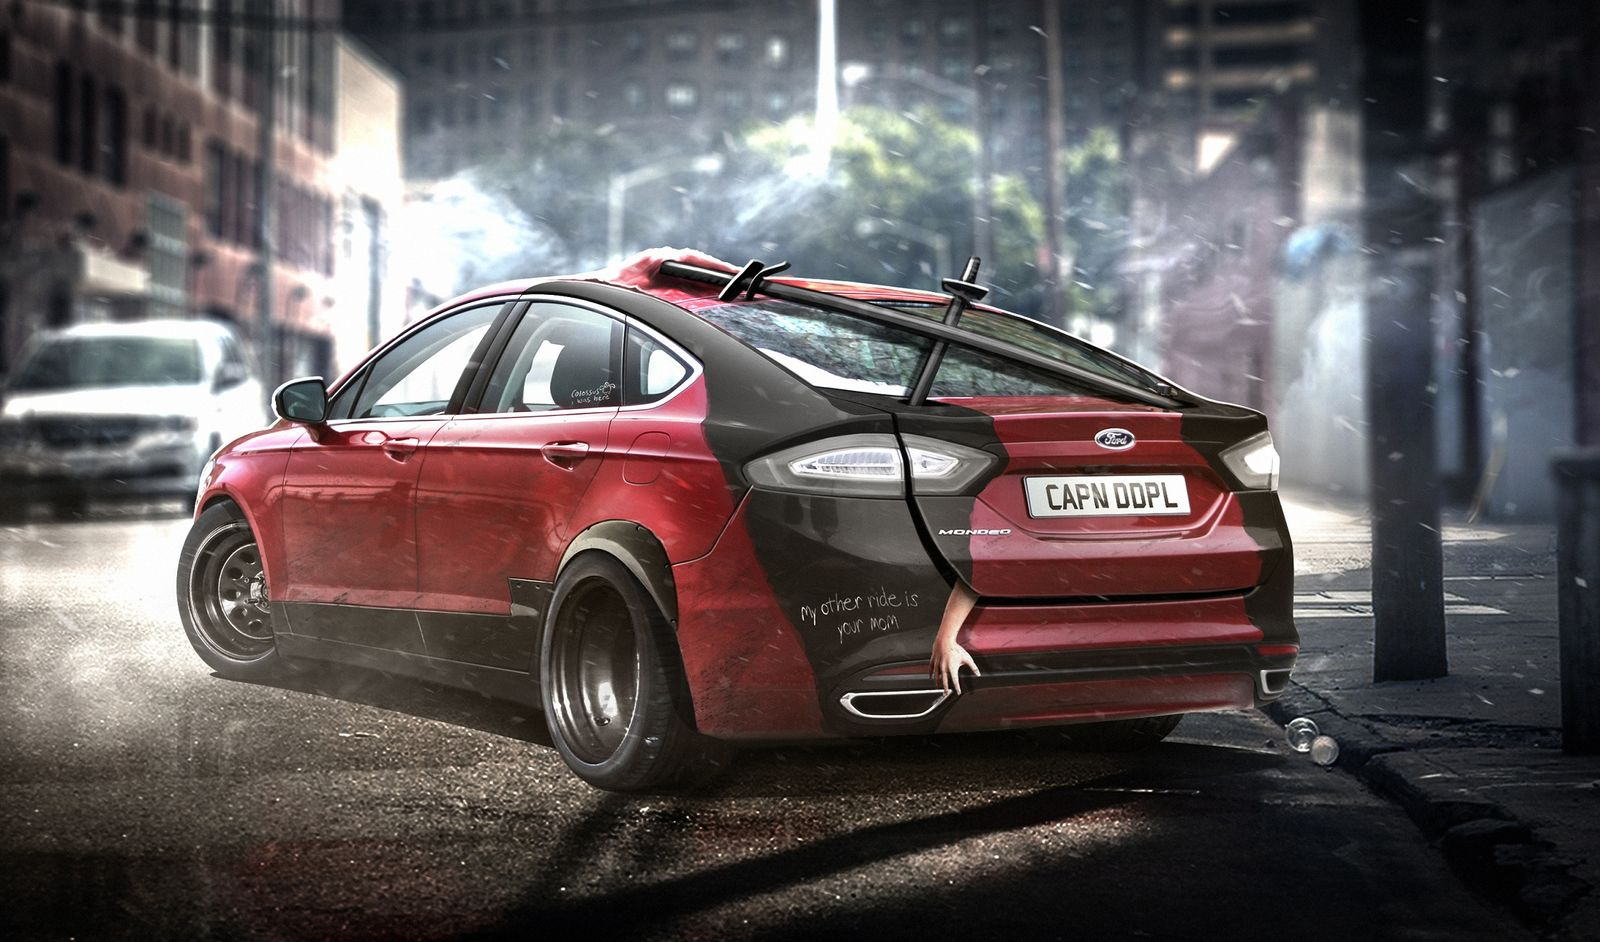 Deadpool's Ford Mondeo/Fusion - carwow